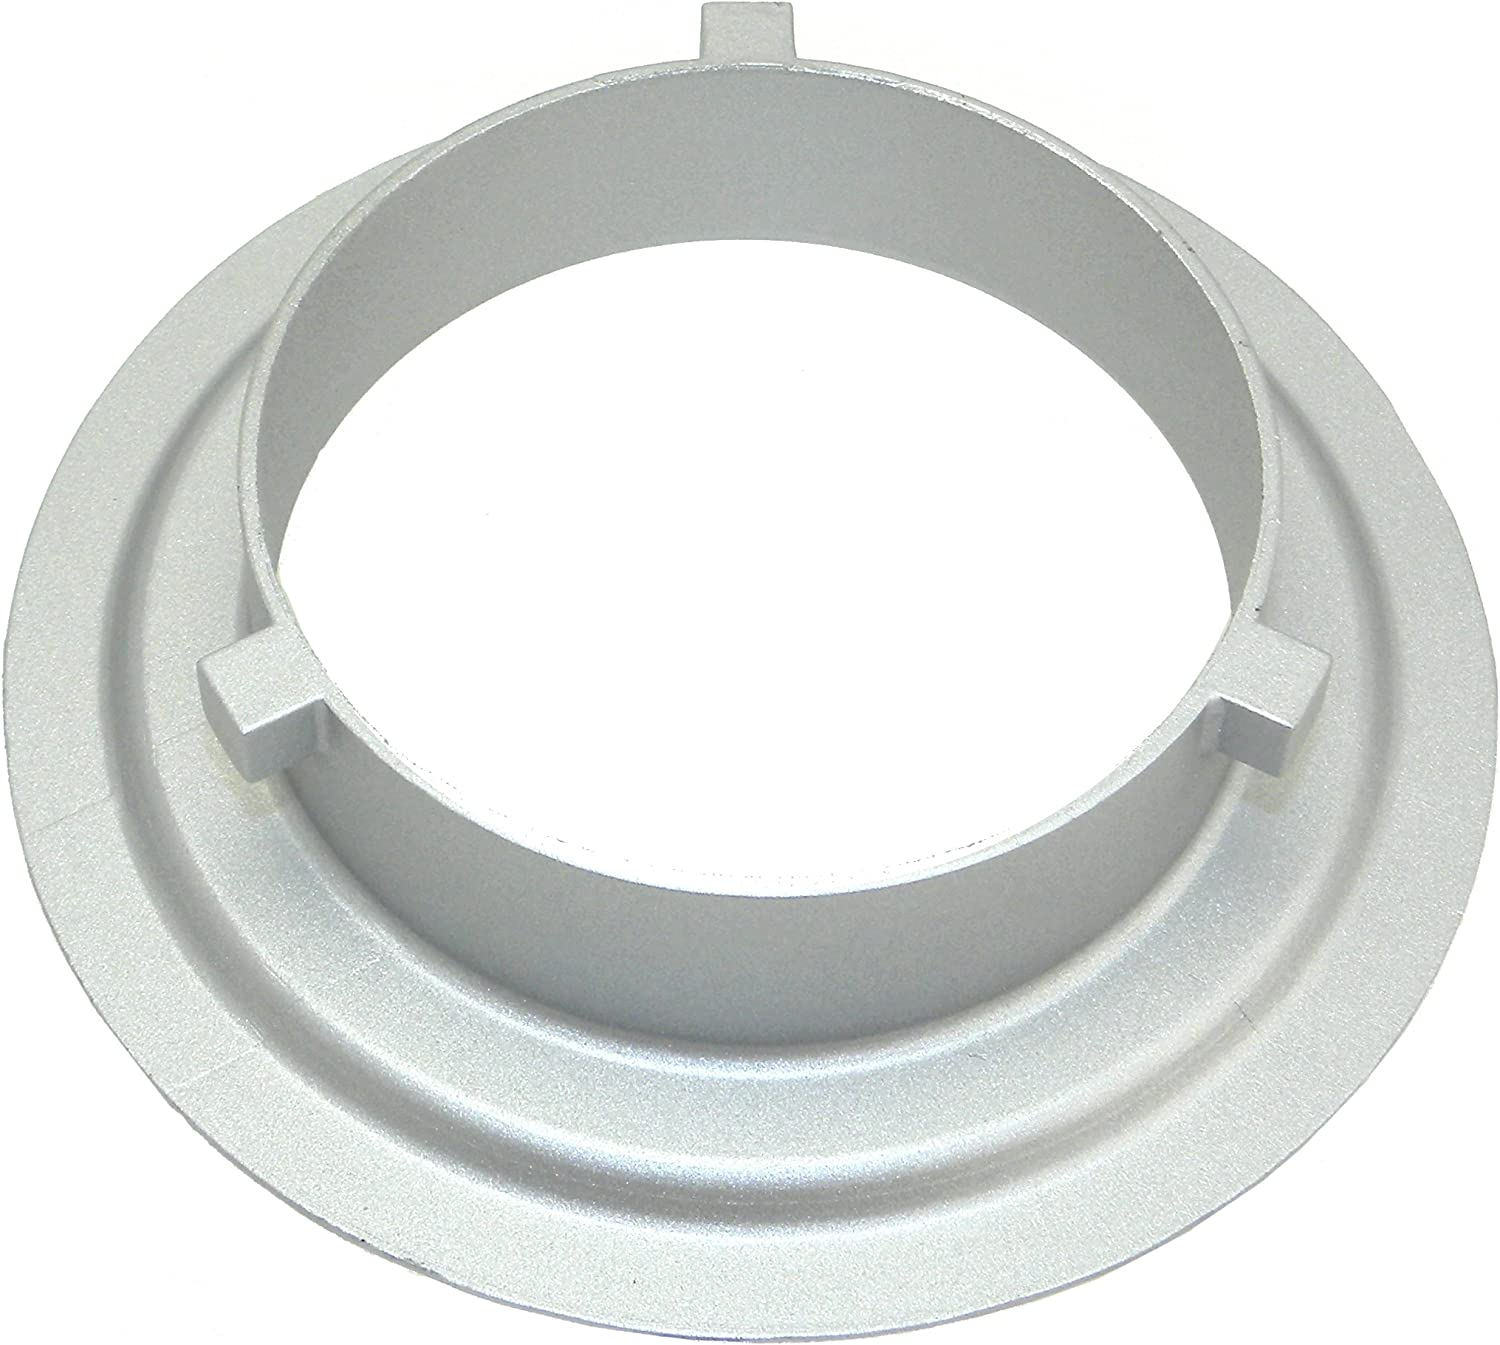 Speed Ring Adapter Flange Speedring Under blast sales For Softbox cheap Bowens Box Soft